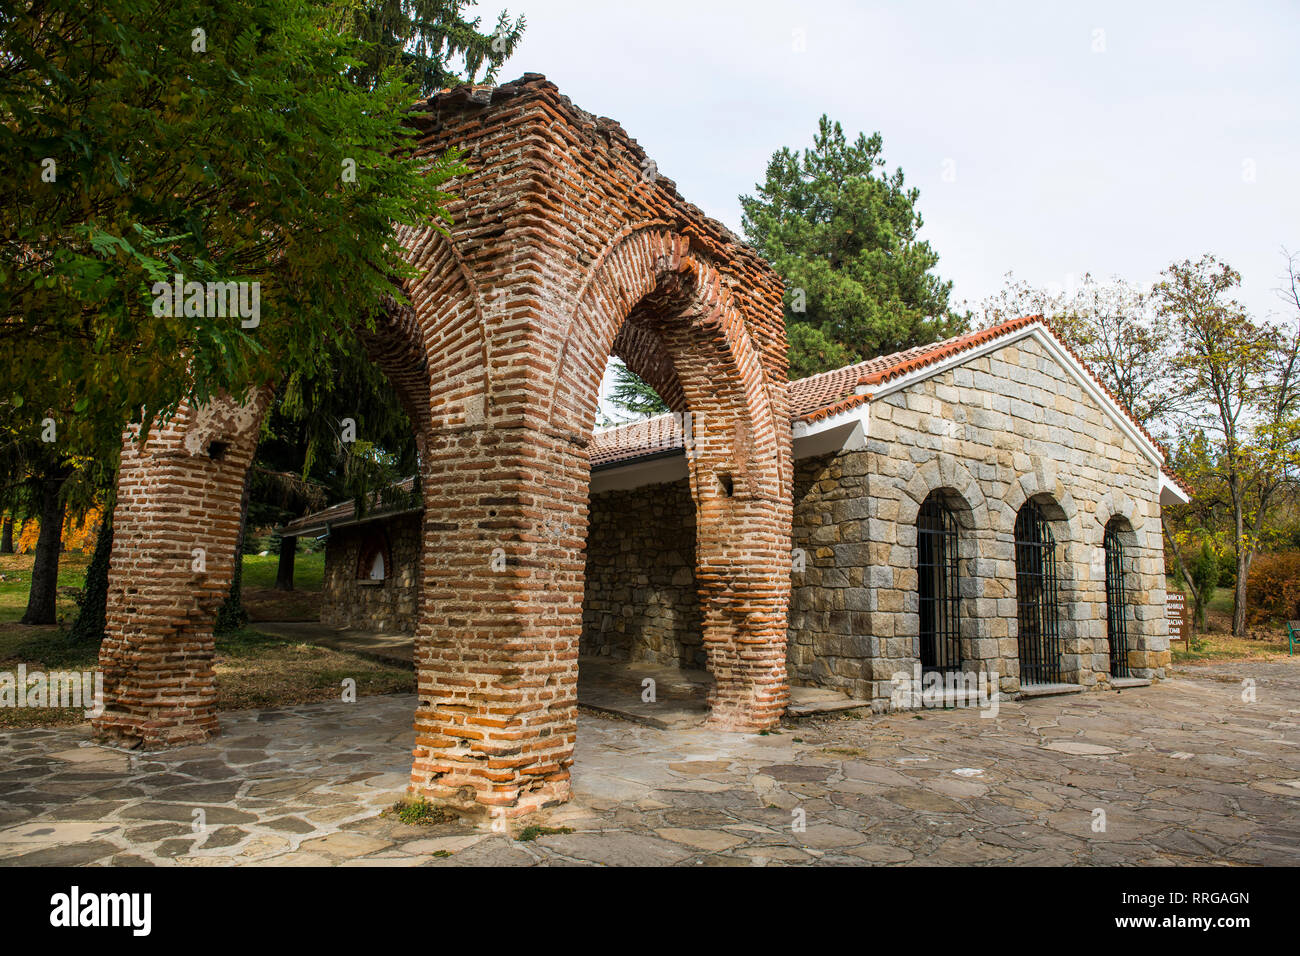 The Thracian Tomb of Kazanlak, UNESCO World Heritage Site, Bulgaria, Europe - Stock Image